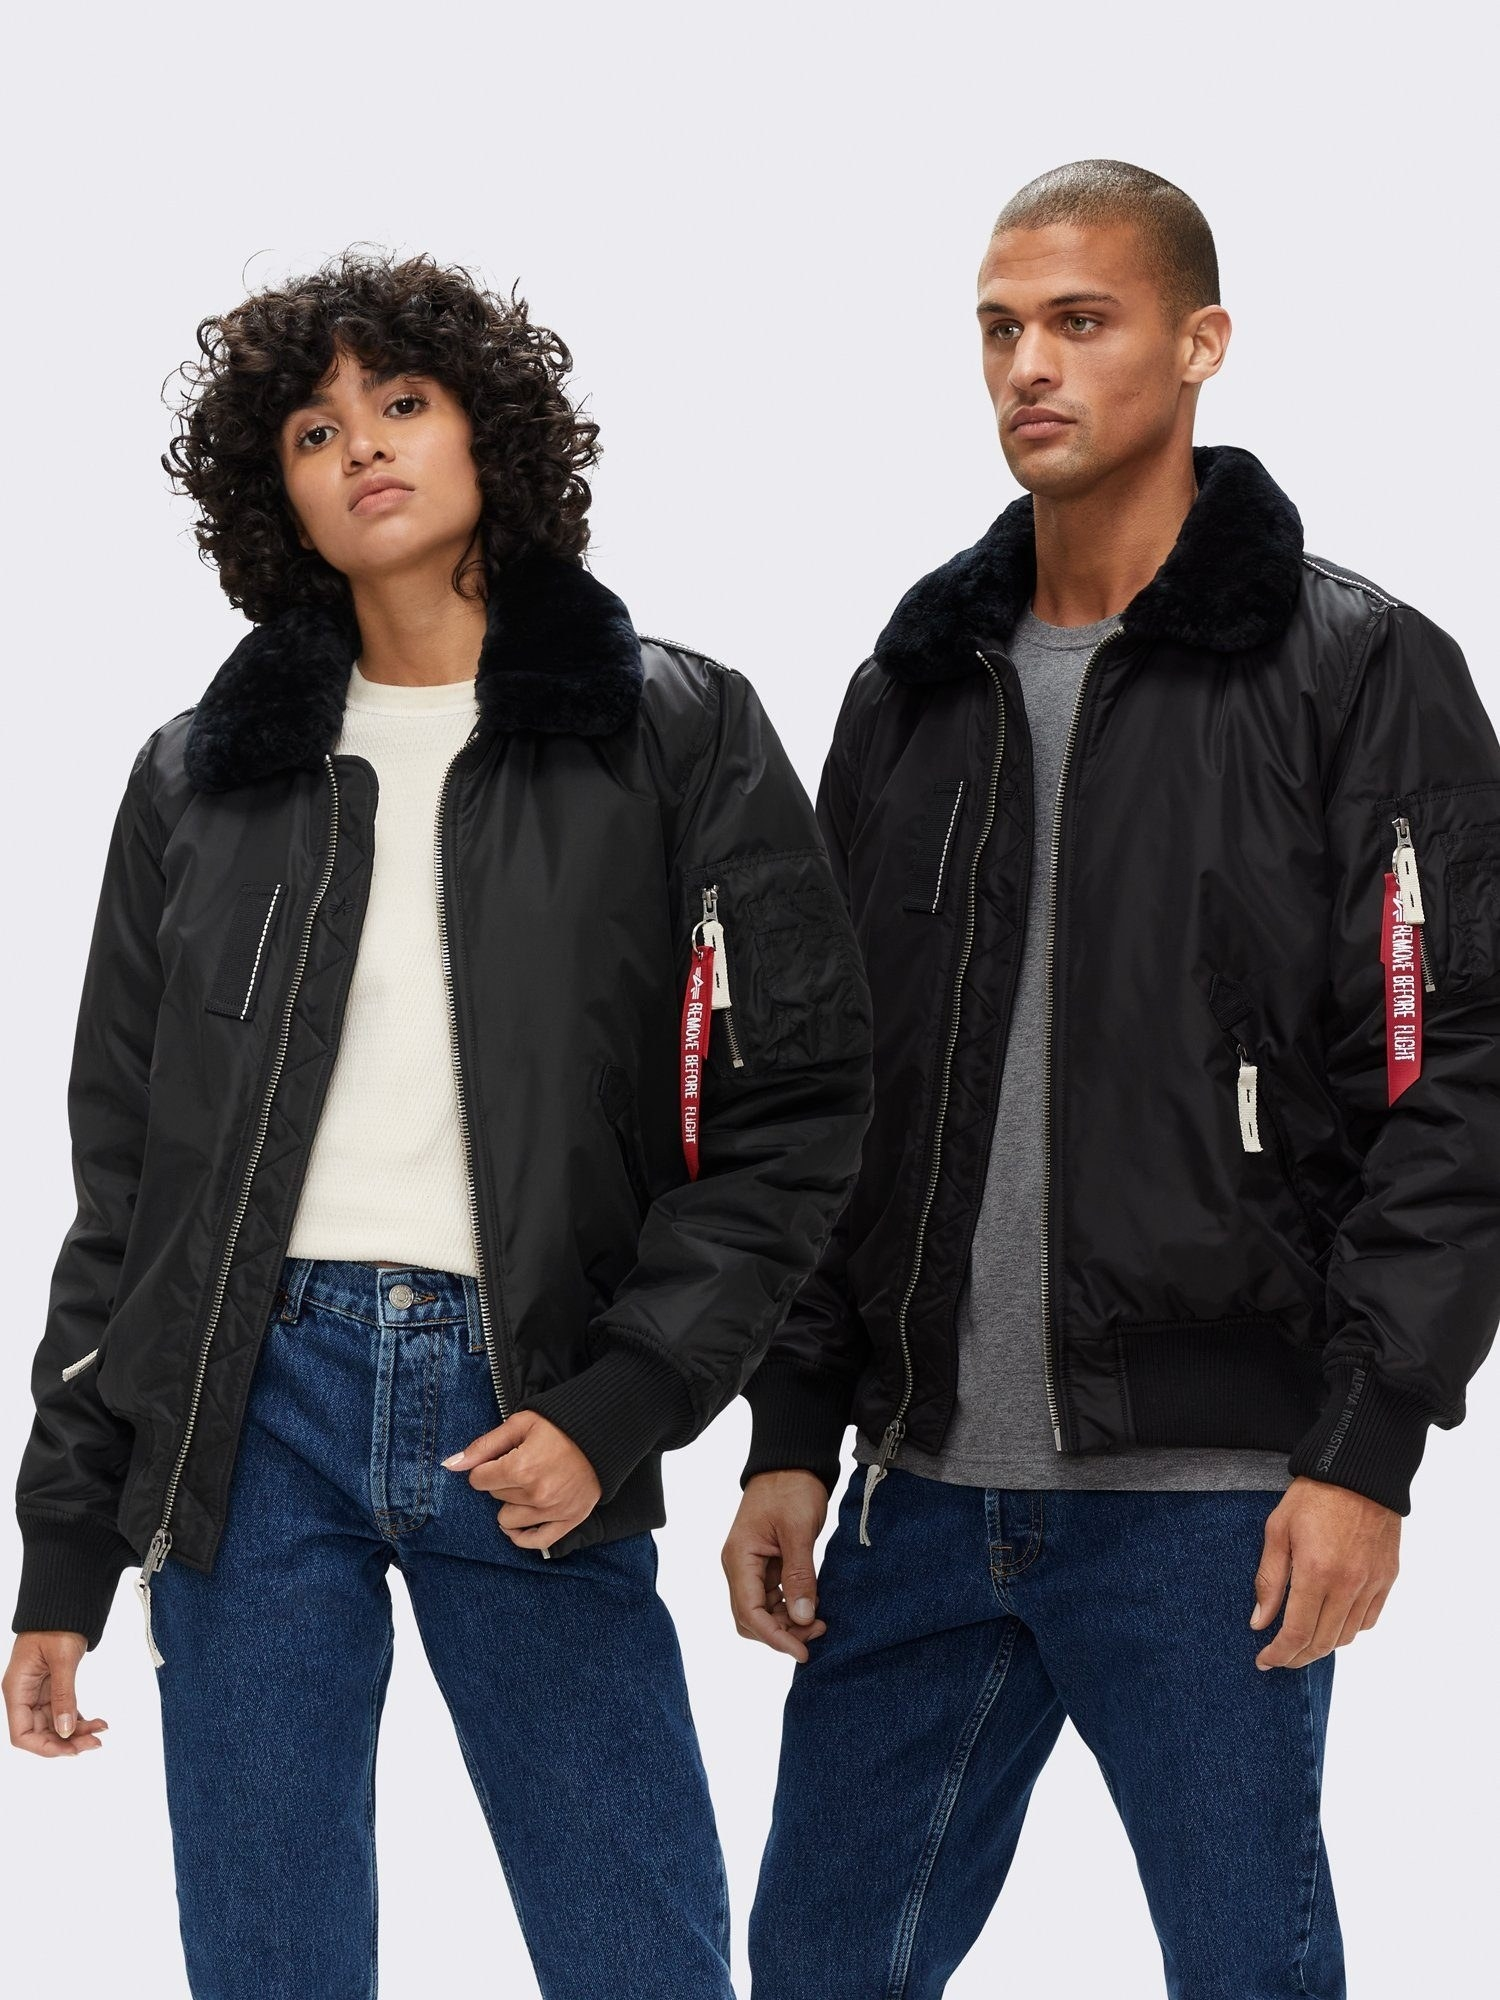 two models wear the injector iii mod bomber jacket